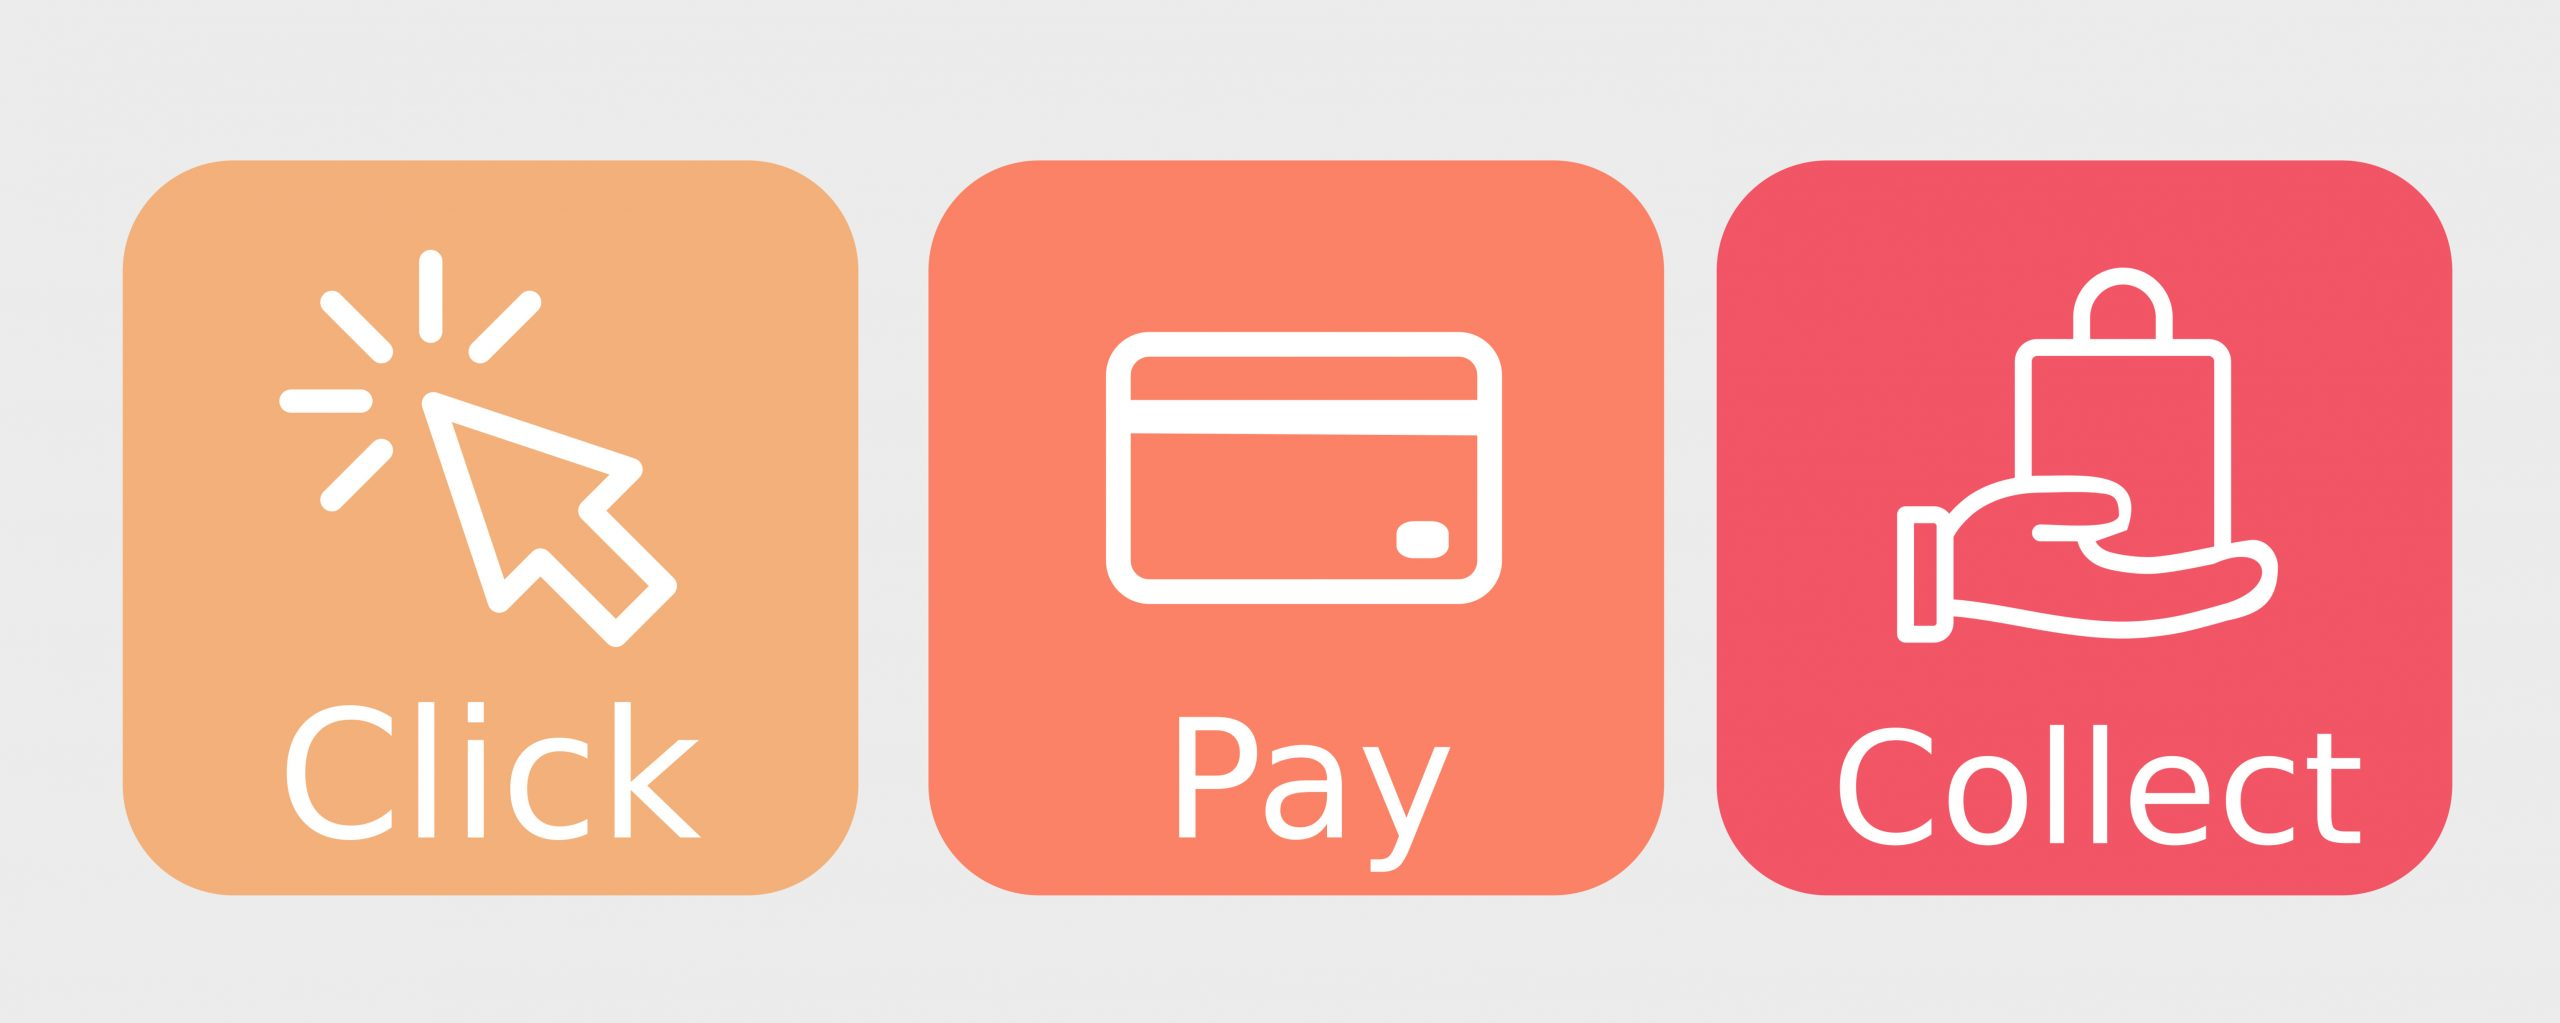 click pay collect